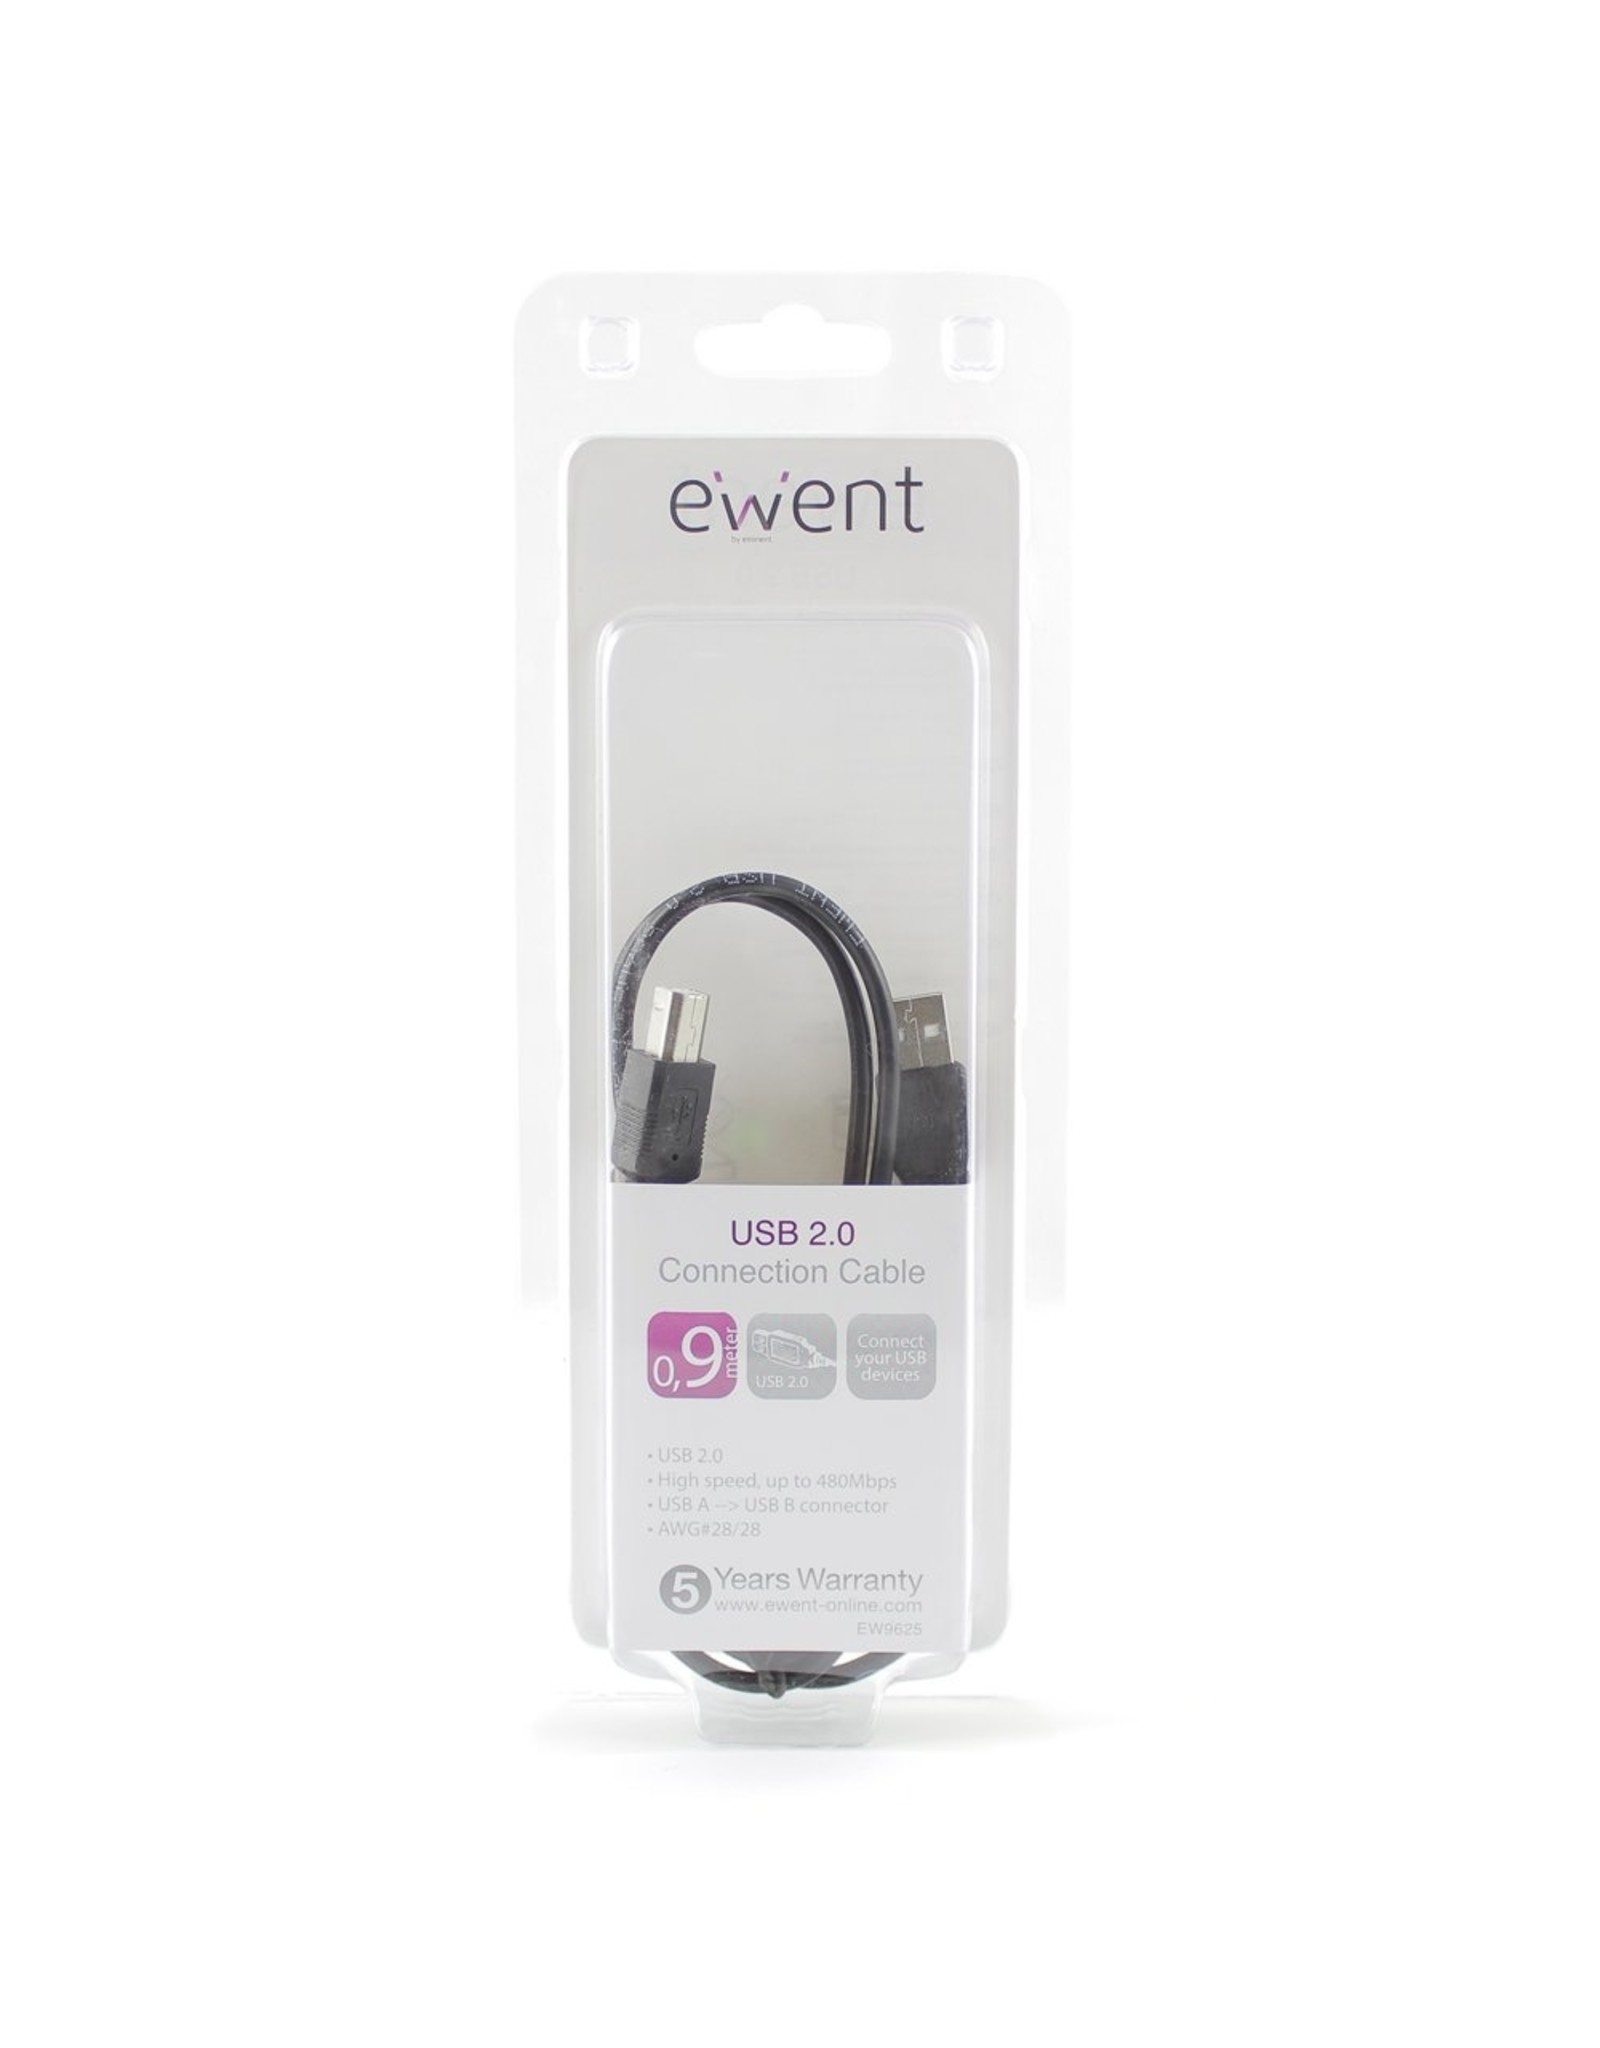 Ewent USB 2.0 Connection Cable 0.9 Meter